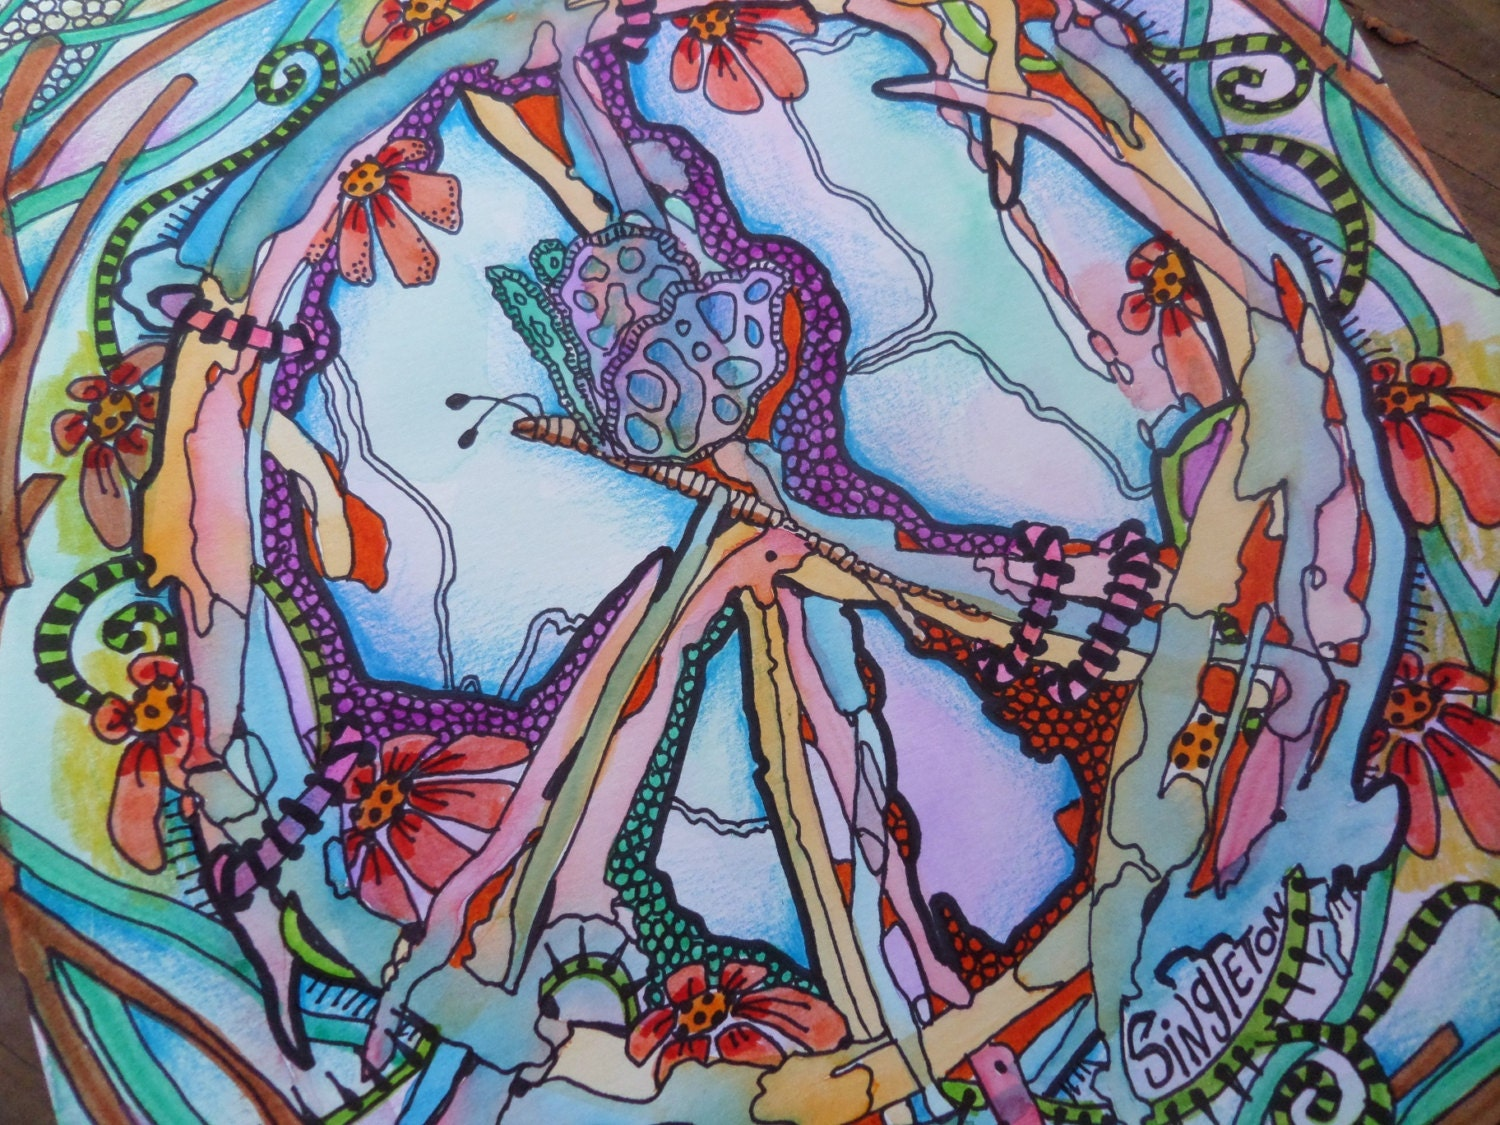 Dragonfly arts and crafts - Peace Art Hippie Art Singleton Hippie Art Original Painting Drawing Peace